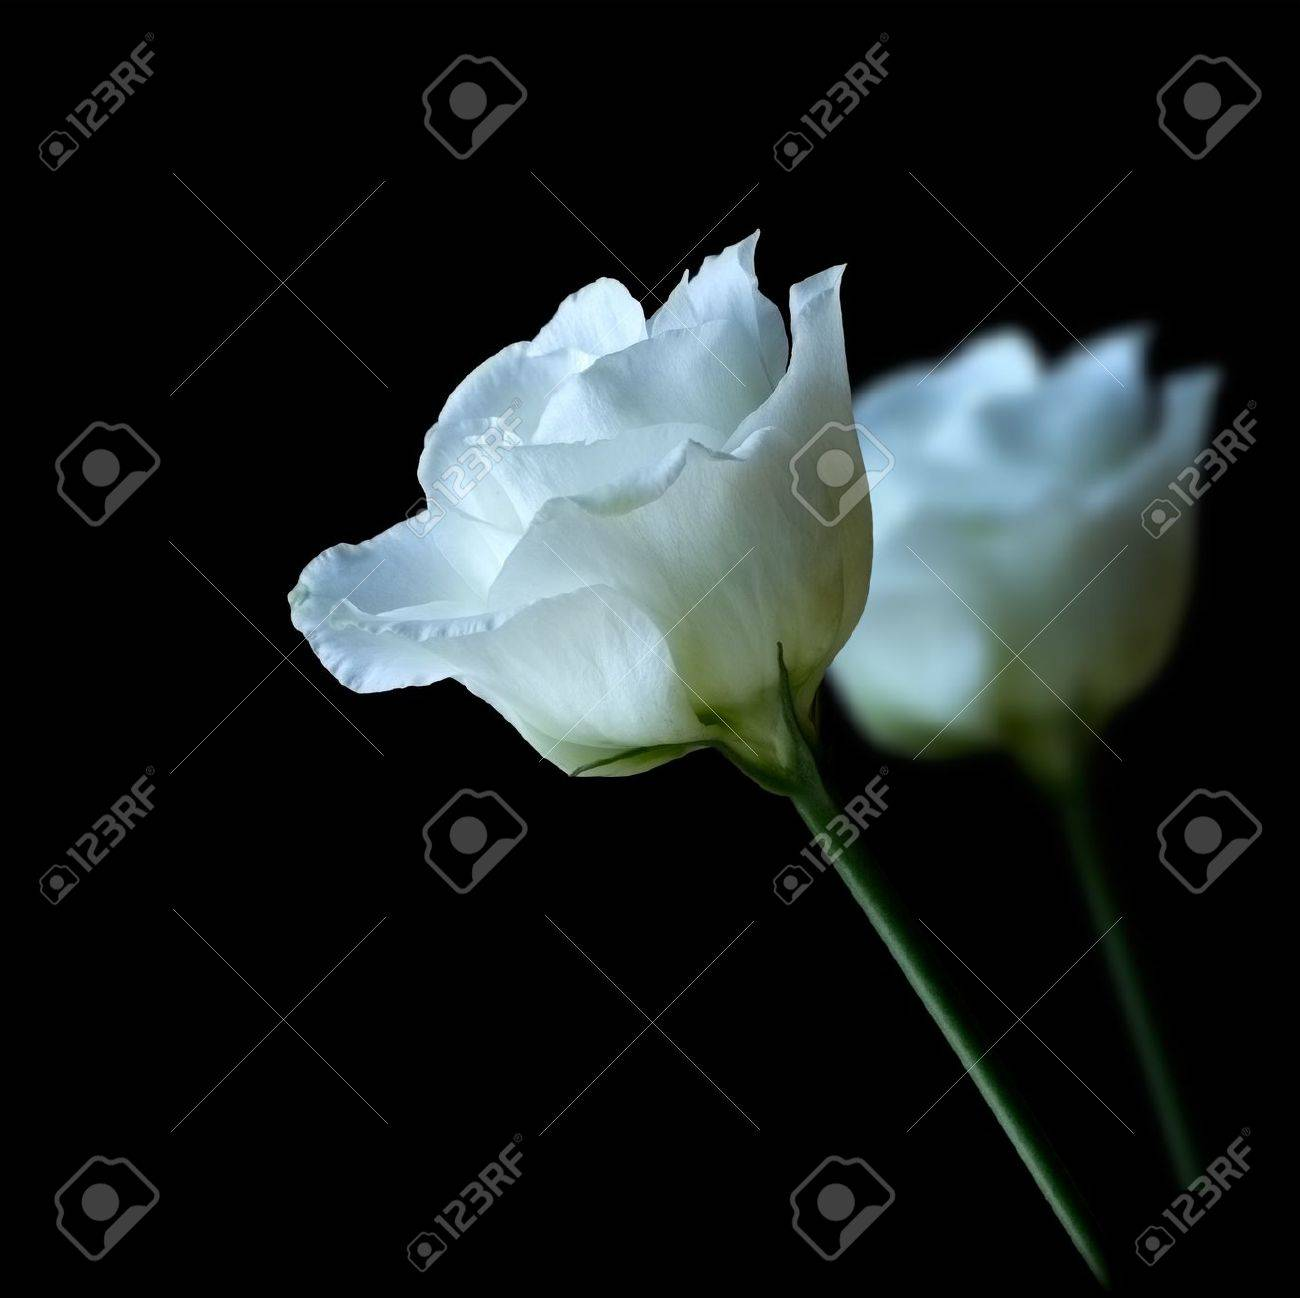 Funeral flowers stock photos royalty free funeral flowers images pair of white roses izmirmasajfo Image collections